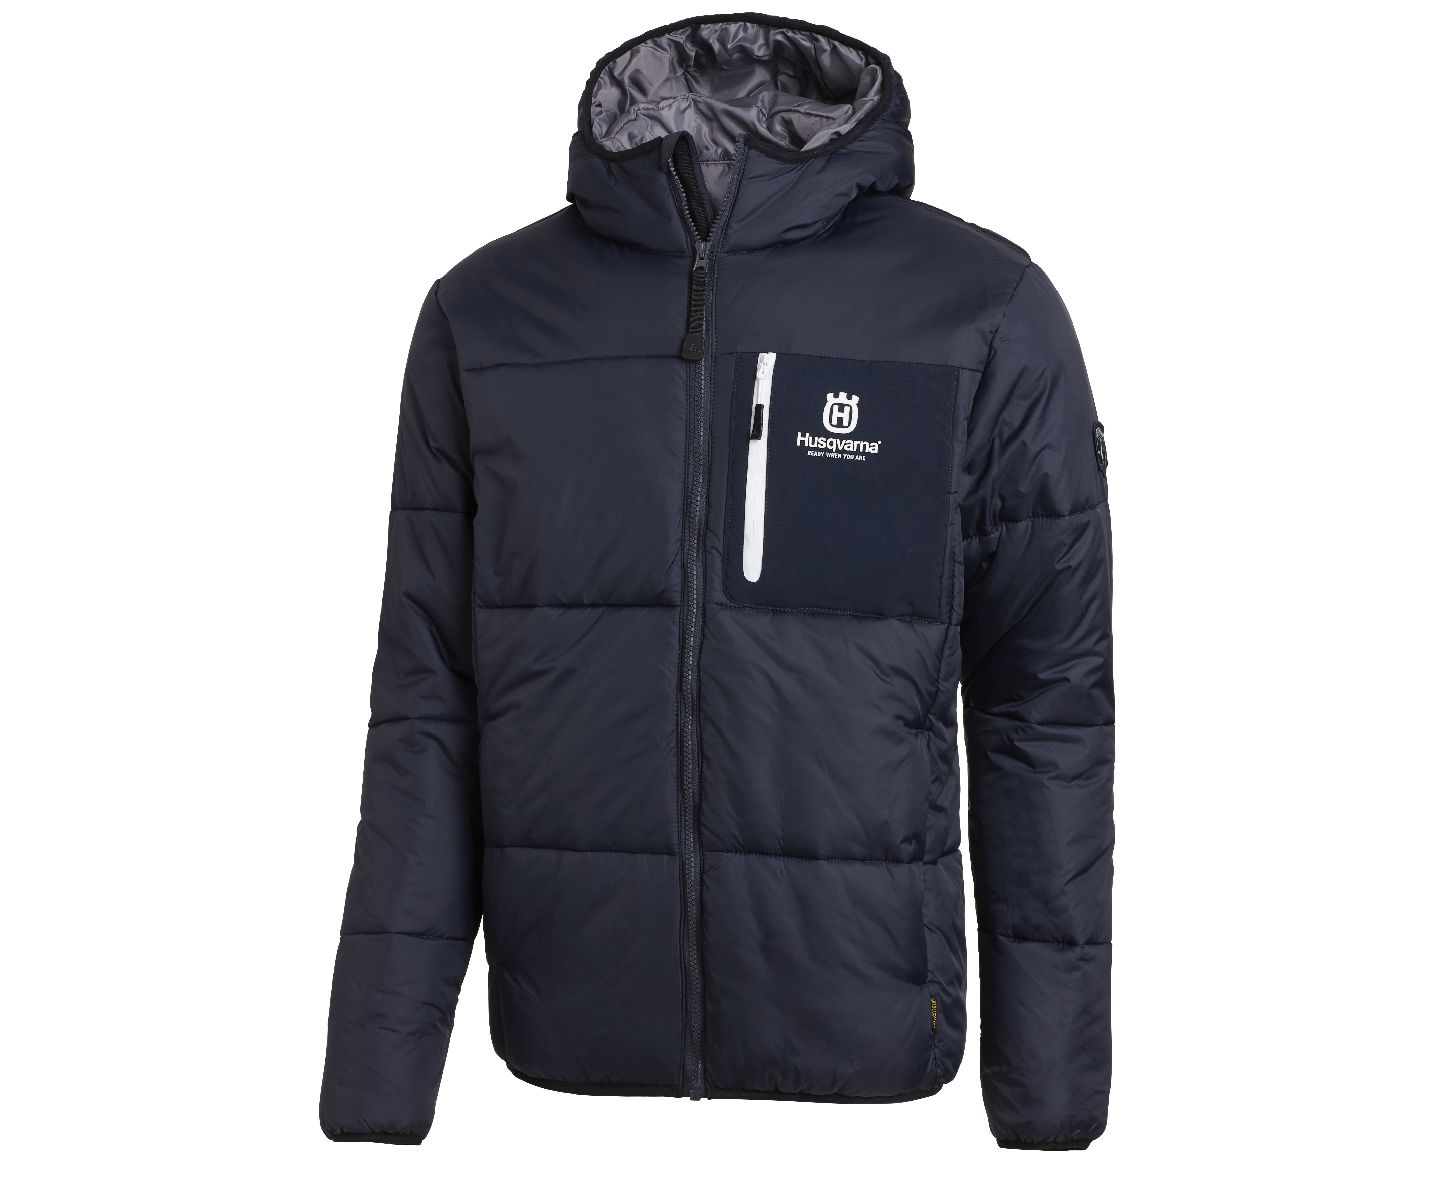 Husqvarna winter jacket (Large)